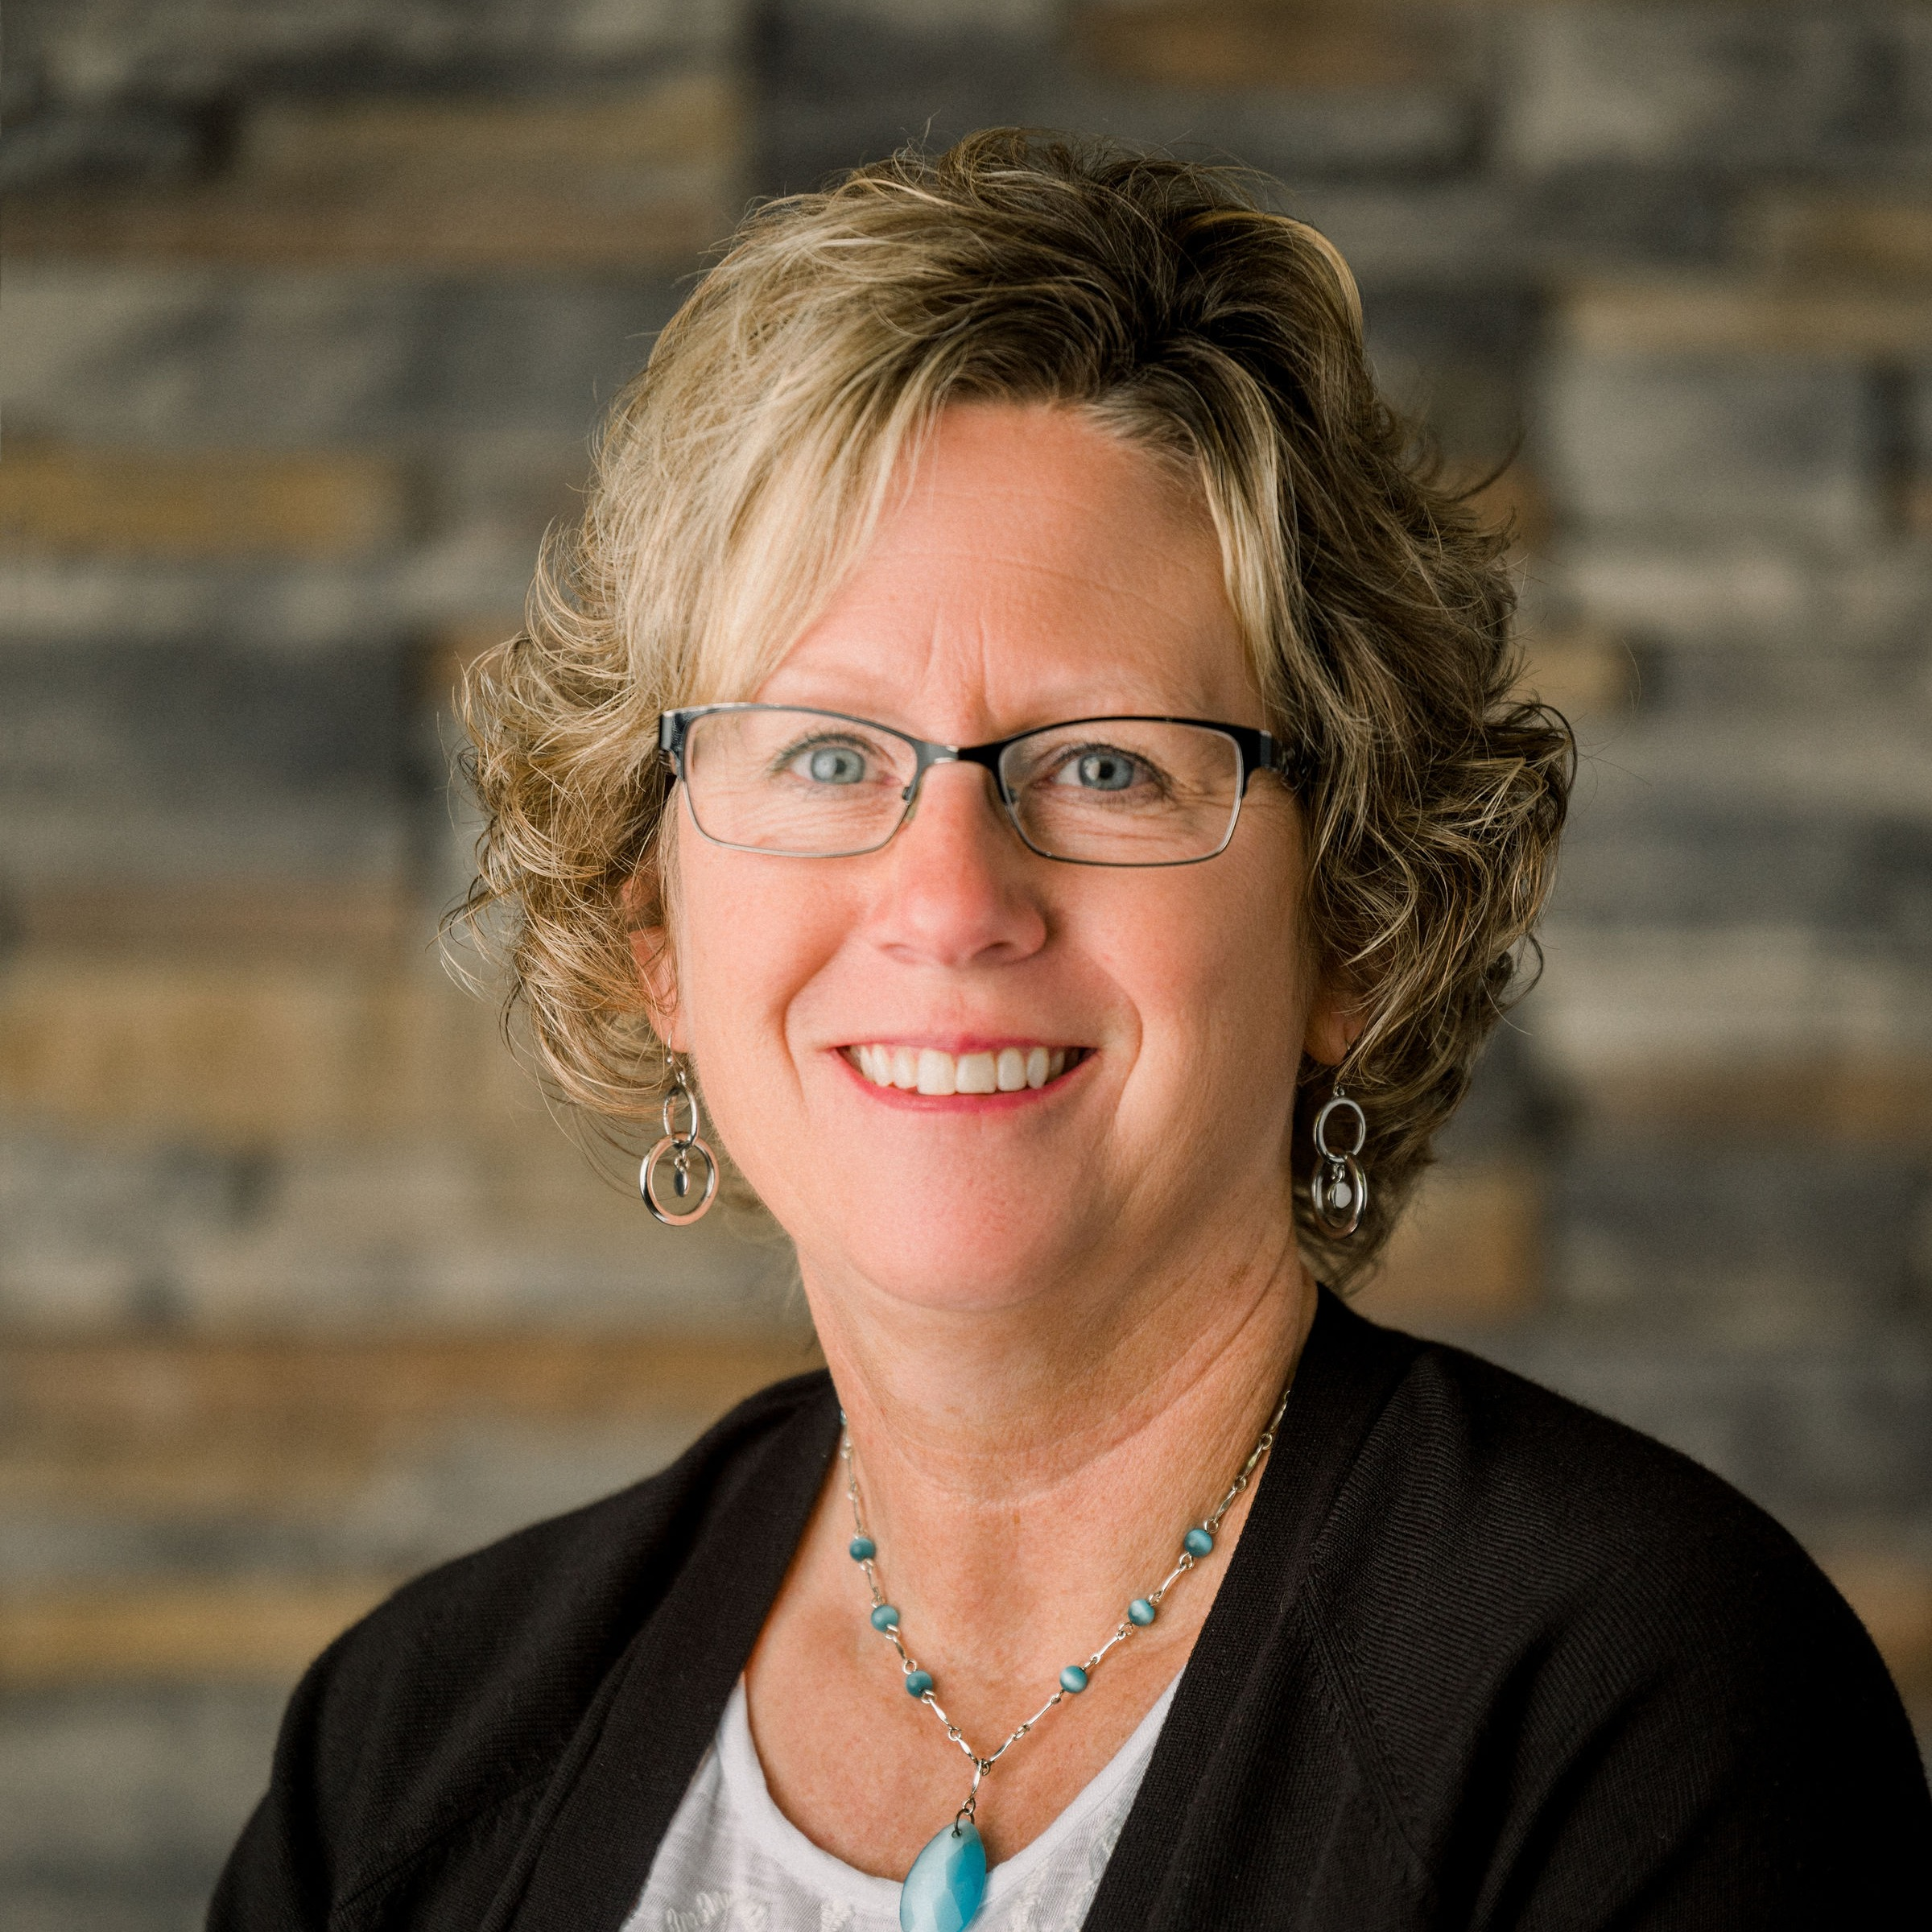 Sandi B. of Orthodontic Specialty Services